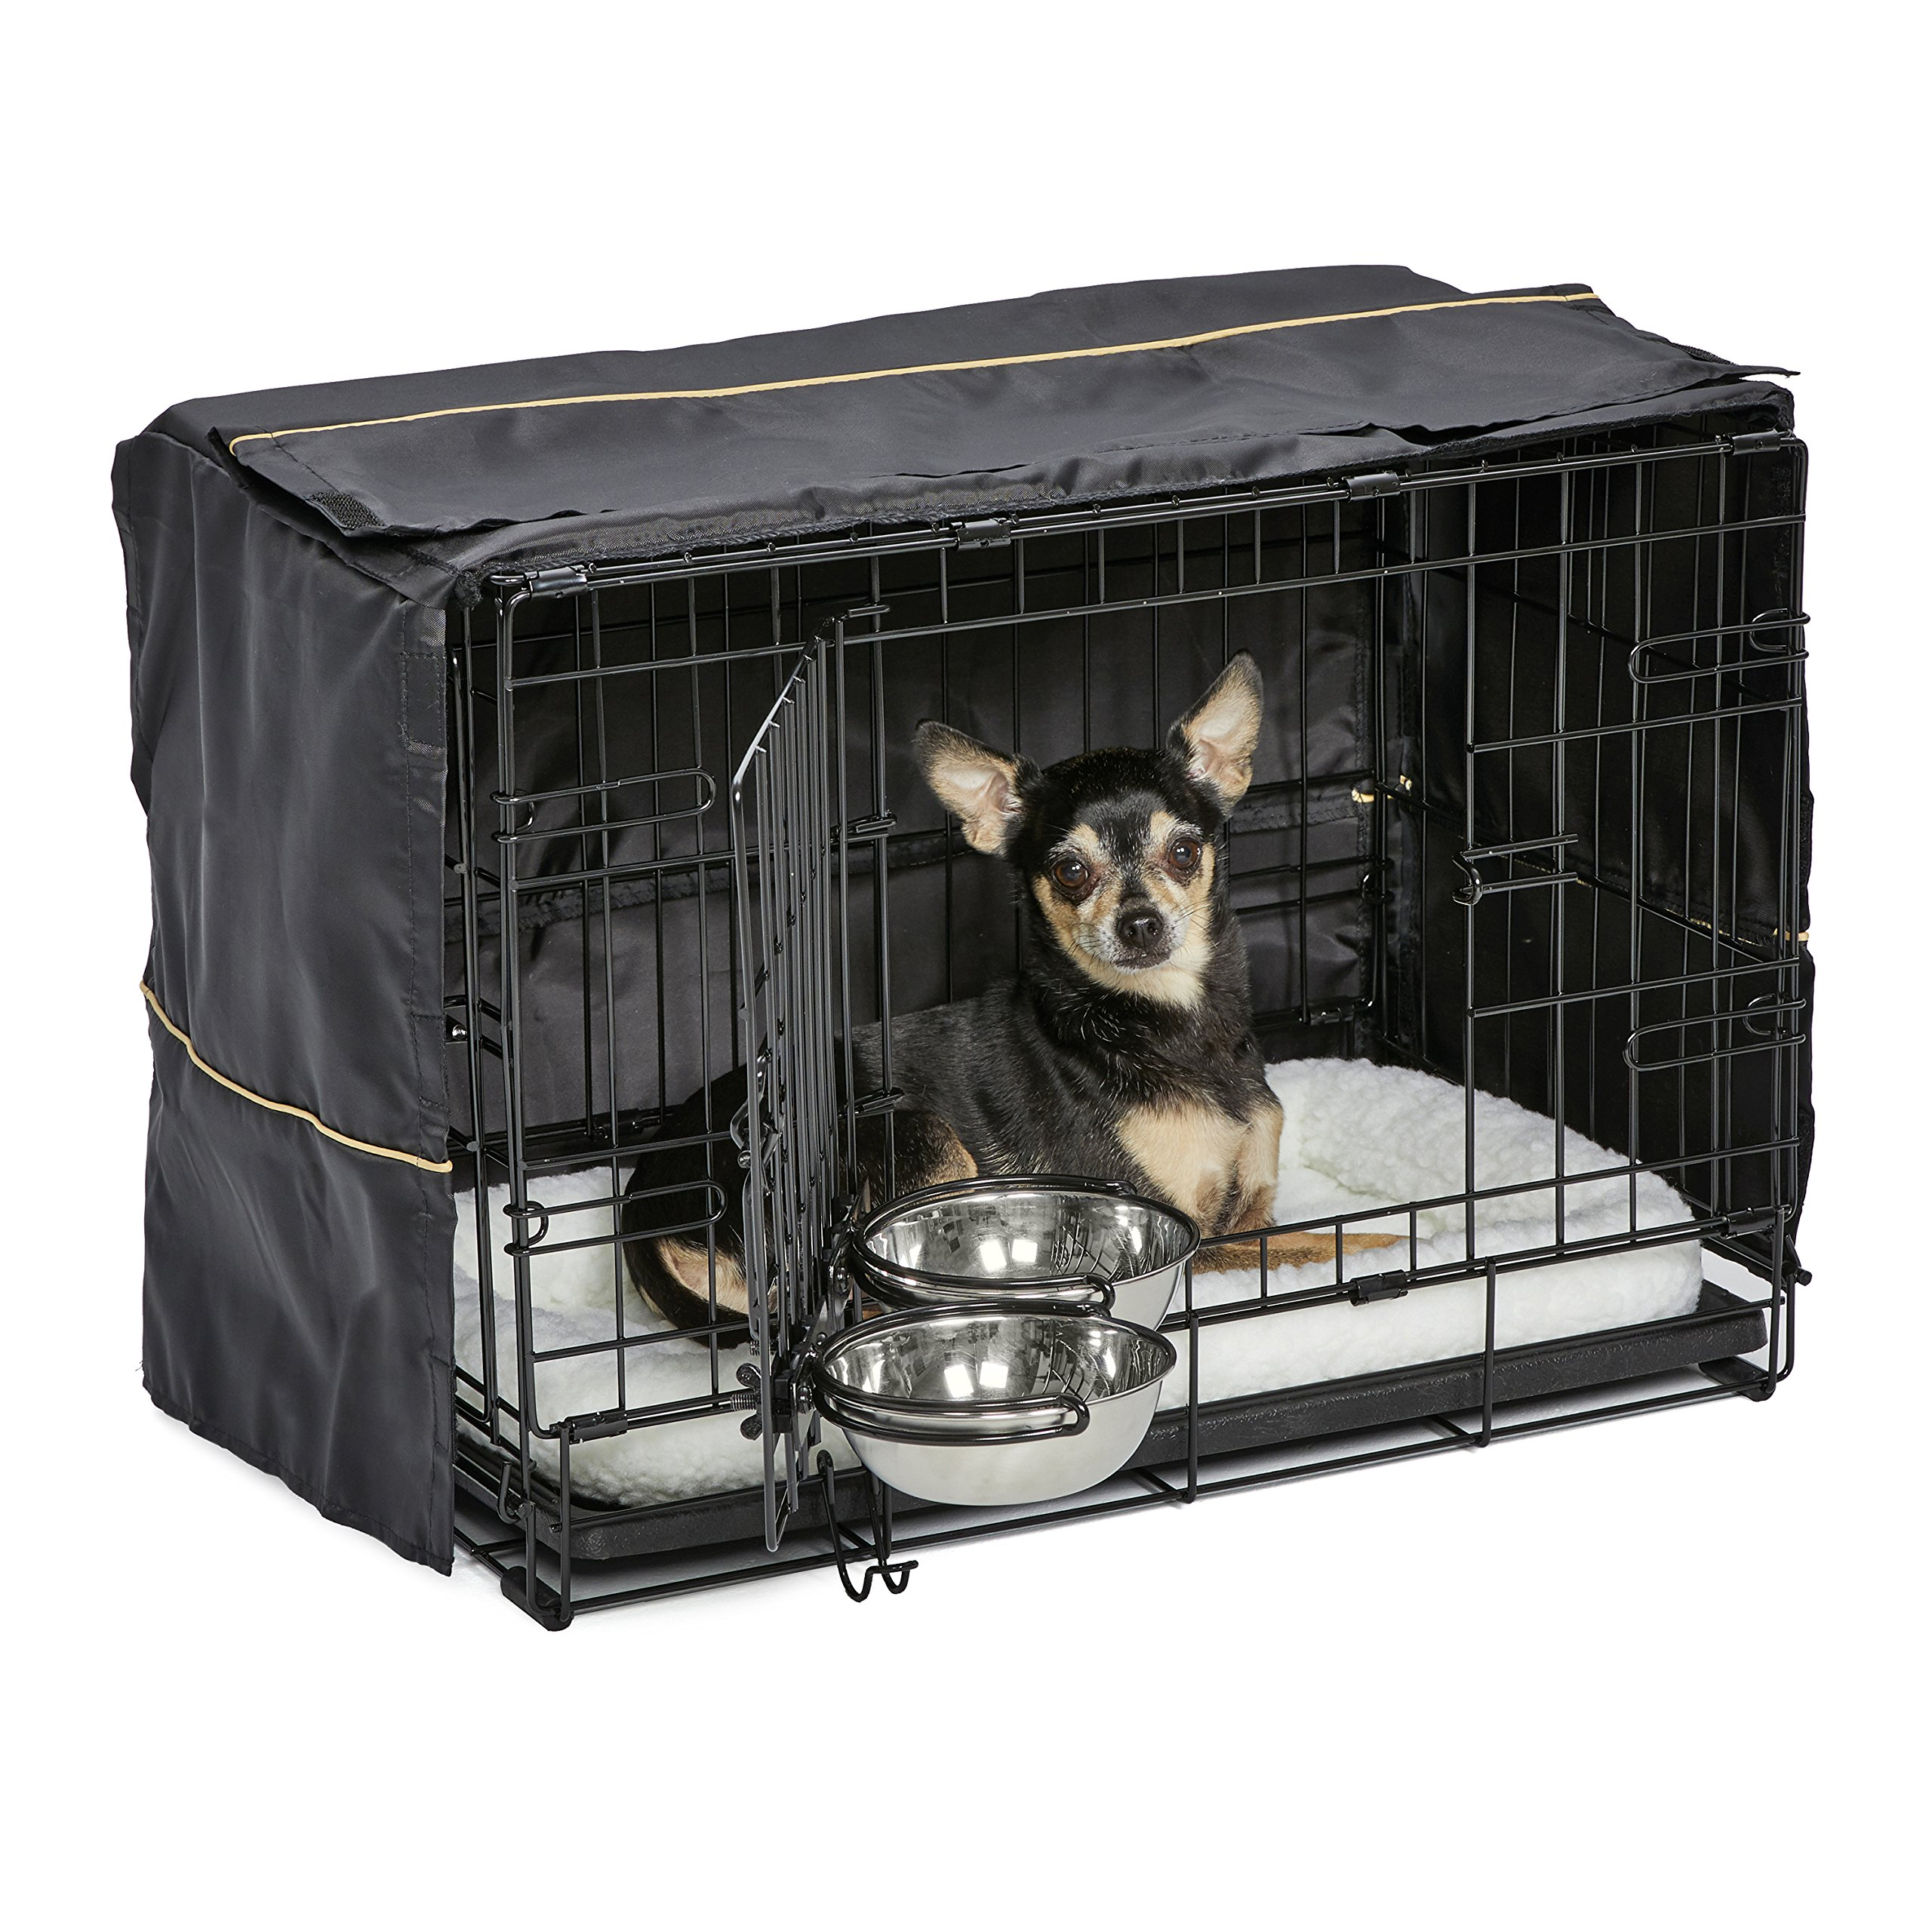 MidWest Homes for Pets Dog Crate Starter Kit | One 2-Door iCrate, Pet Bed, Crate Cover & 2 Pet Bowls | 22-Inch Ideal for XS Dog Breeds